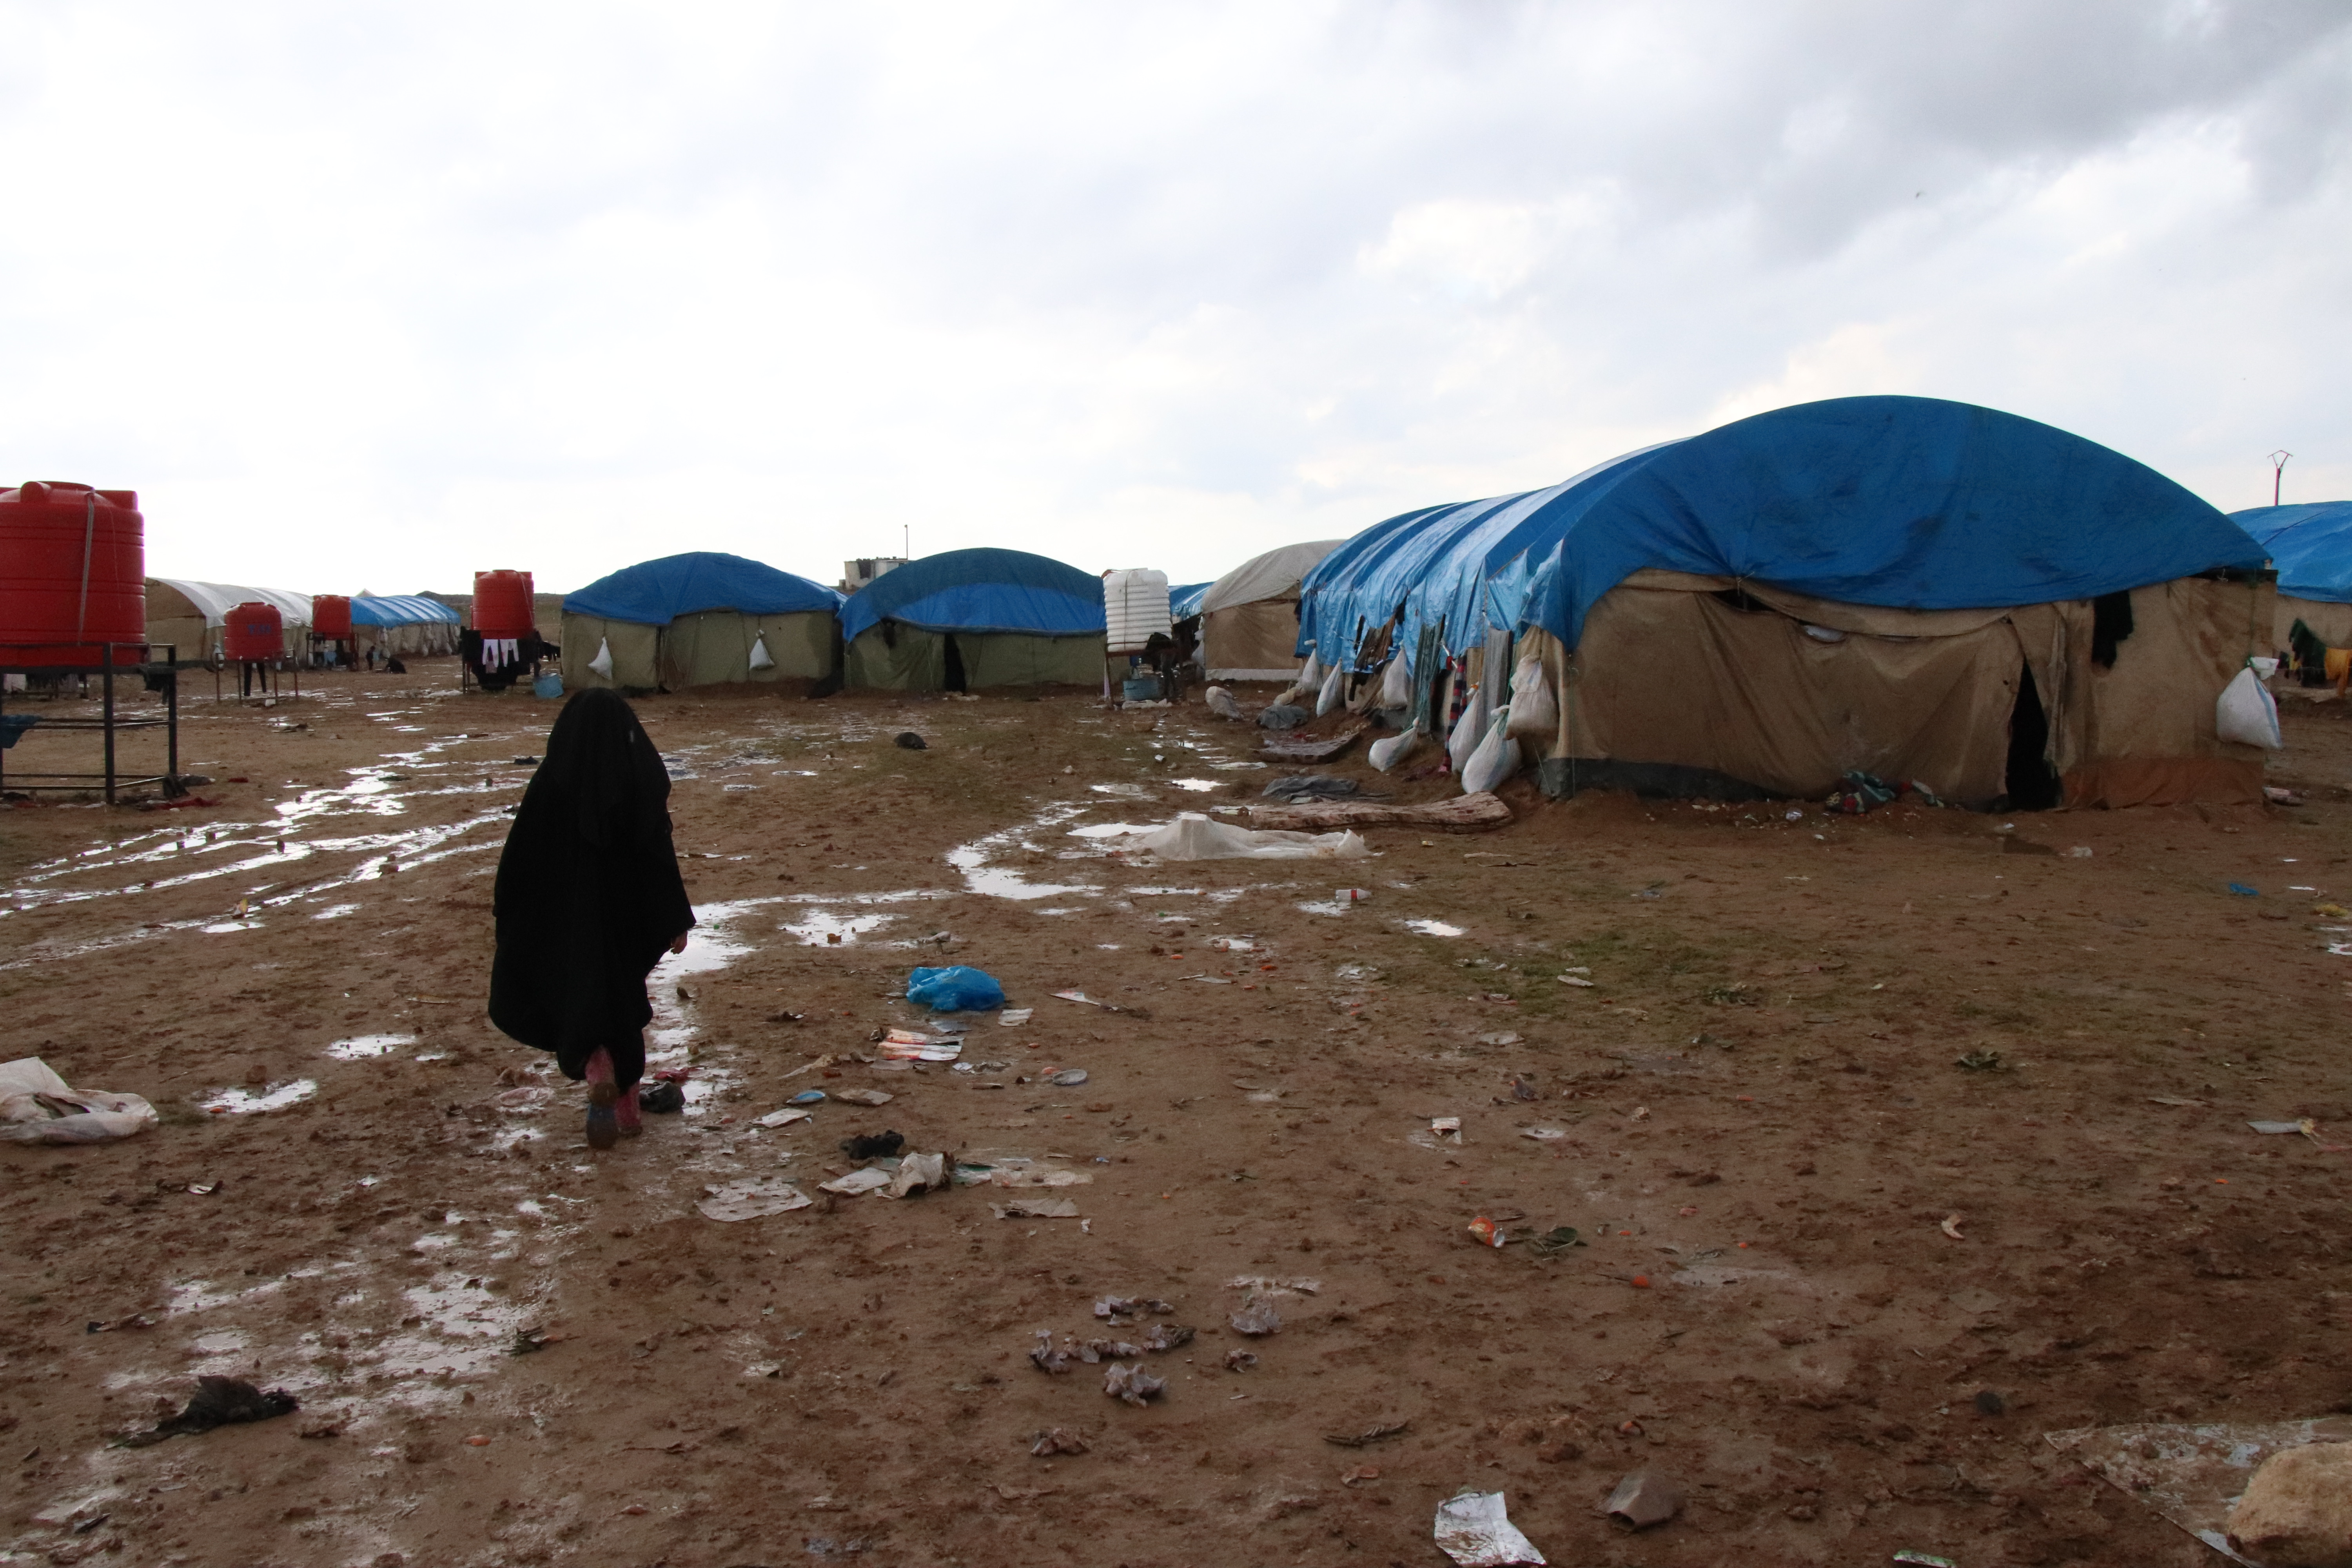 Aid organizations say the camp is overcrowded, and short of food, medical supplies and tents, al-Hol camp, Syria, March 4, 2019.